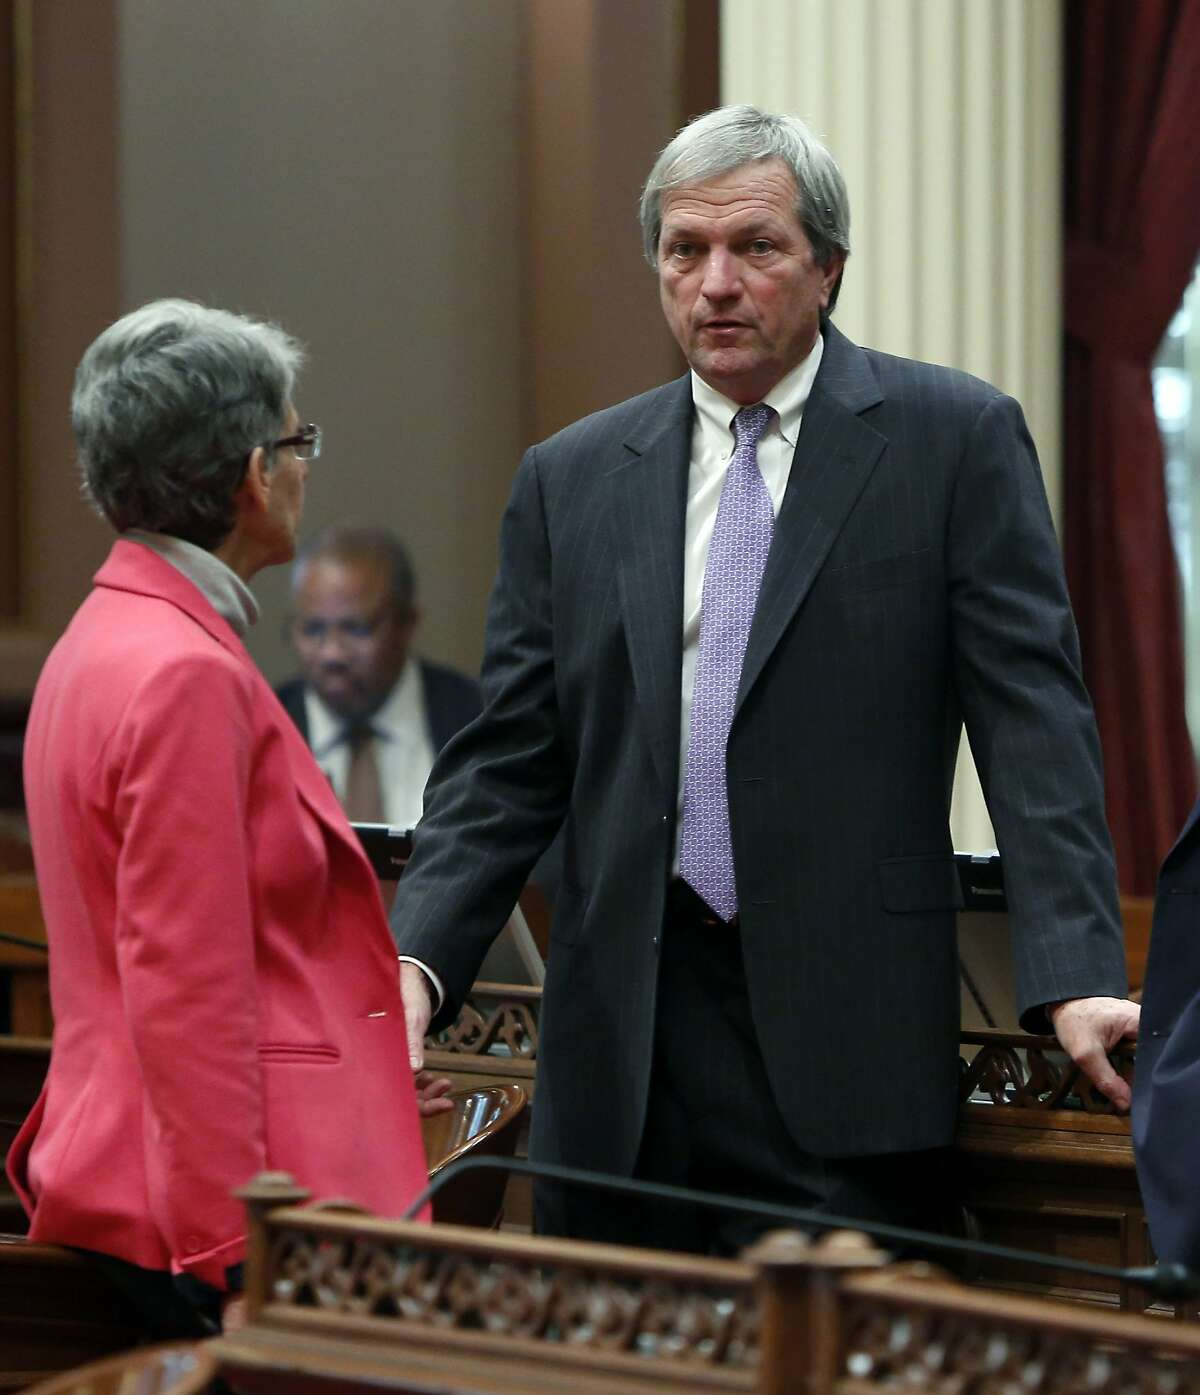 State Sen. Mark DeSaulnier, D-Concord, right, talks with Sen. Hannah-Beth Jackson, D-Santa Barbara, at the Capitol, Monday, Jan. 13, 2014, in Sacramento, Calif. DeSaulnier has announced that he will run for the Congressional seat of Rep. George Miller, D-Calif., who announced Monday that he would not seek re-election in 2014 after four decades in Congress. (AP Photo/Rich Pedroncelli)